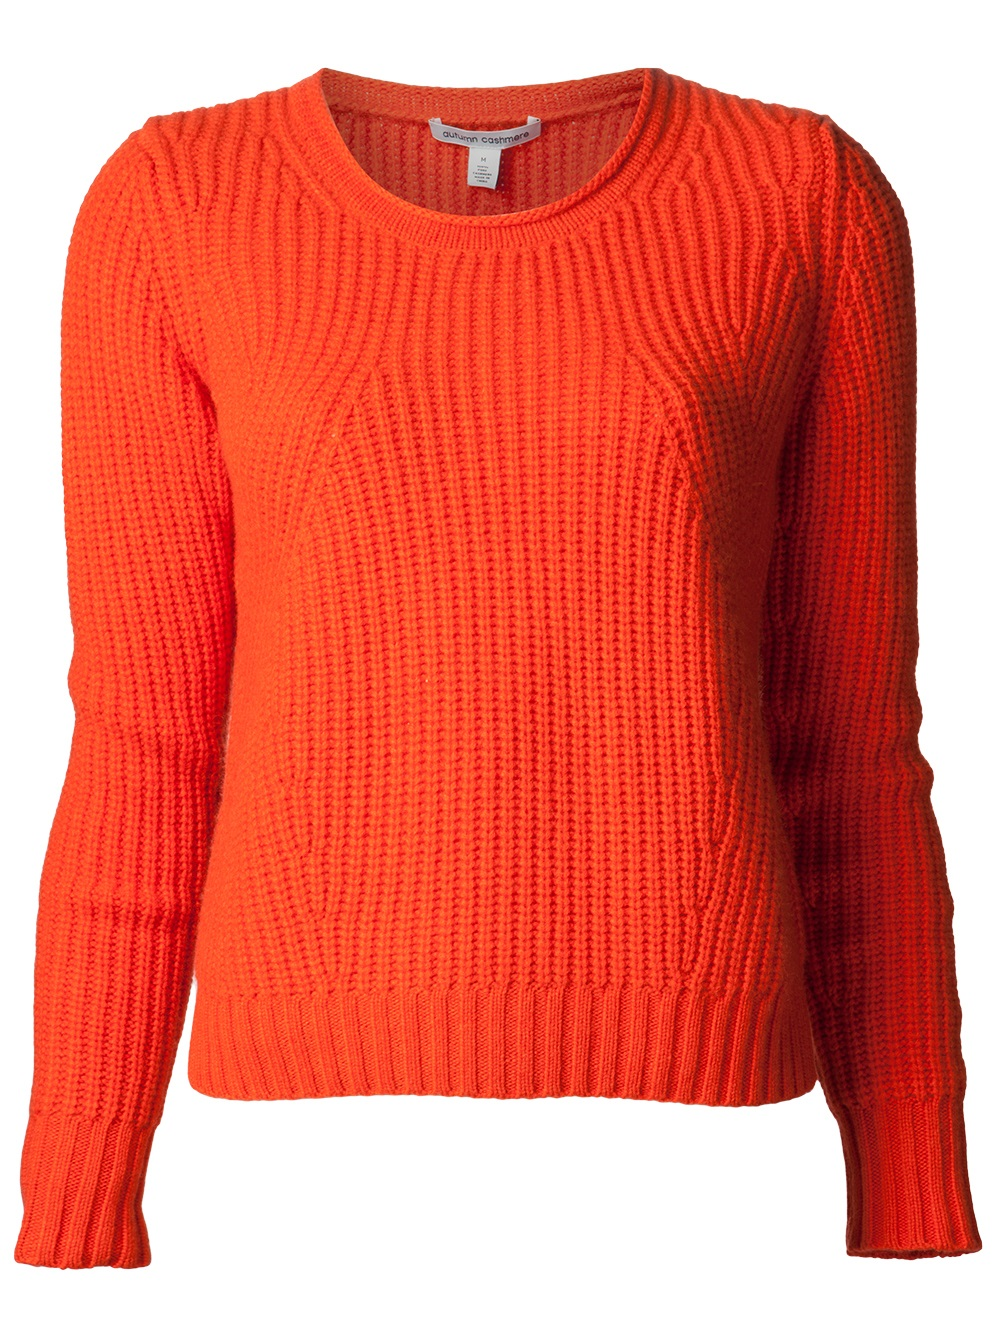 lyst autumn cashmere cashmere shaker stitch sweater in